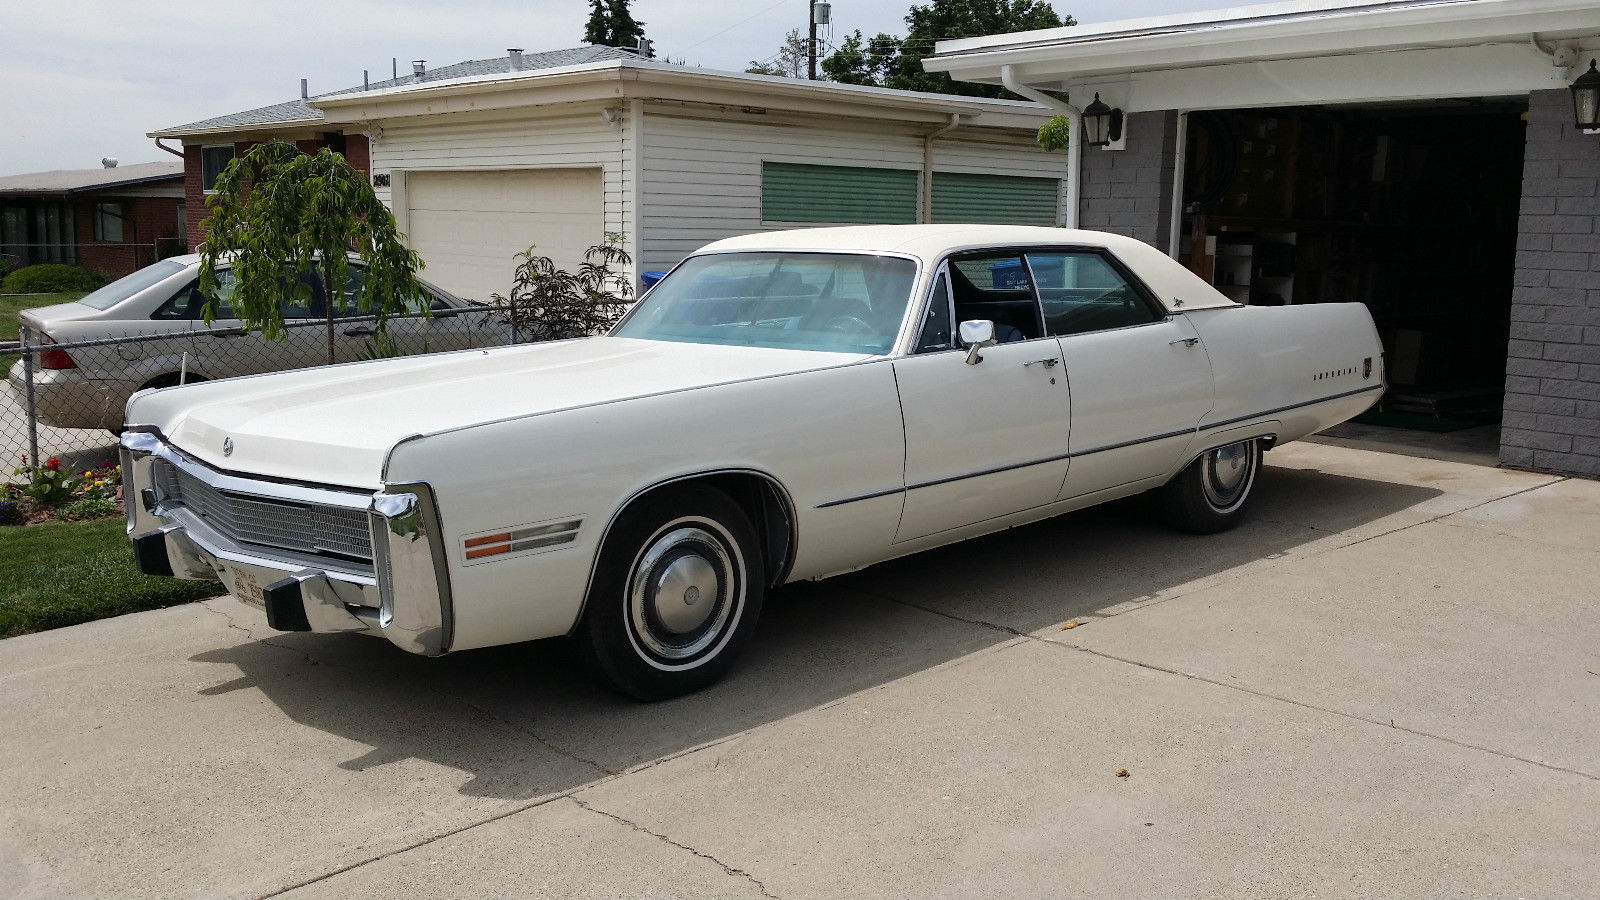 All American Classic Cars: 1973 Imperial Le Baron 4-Door